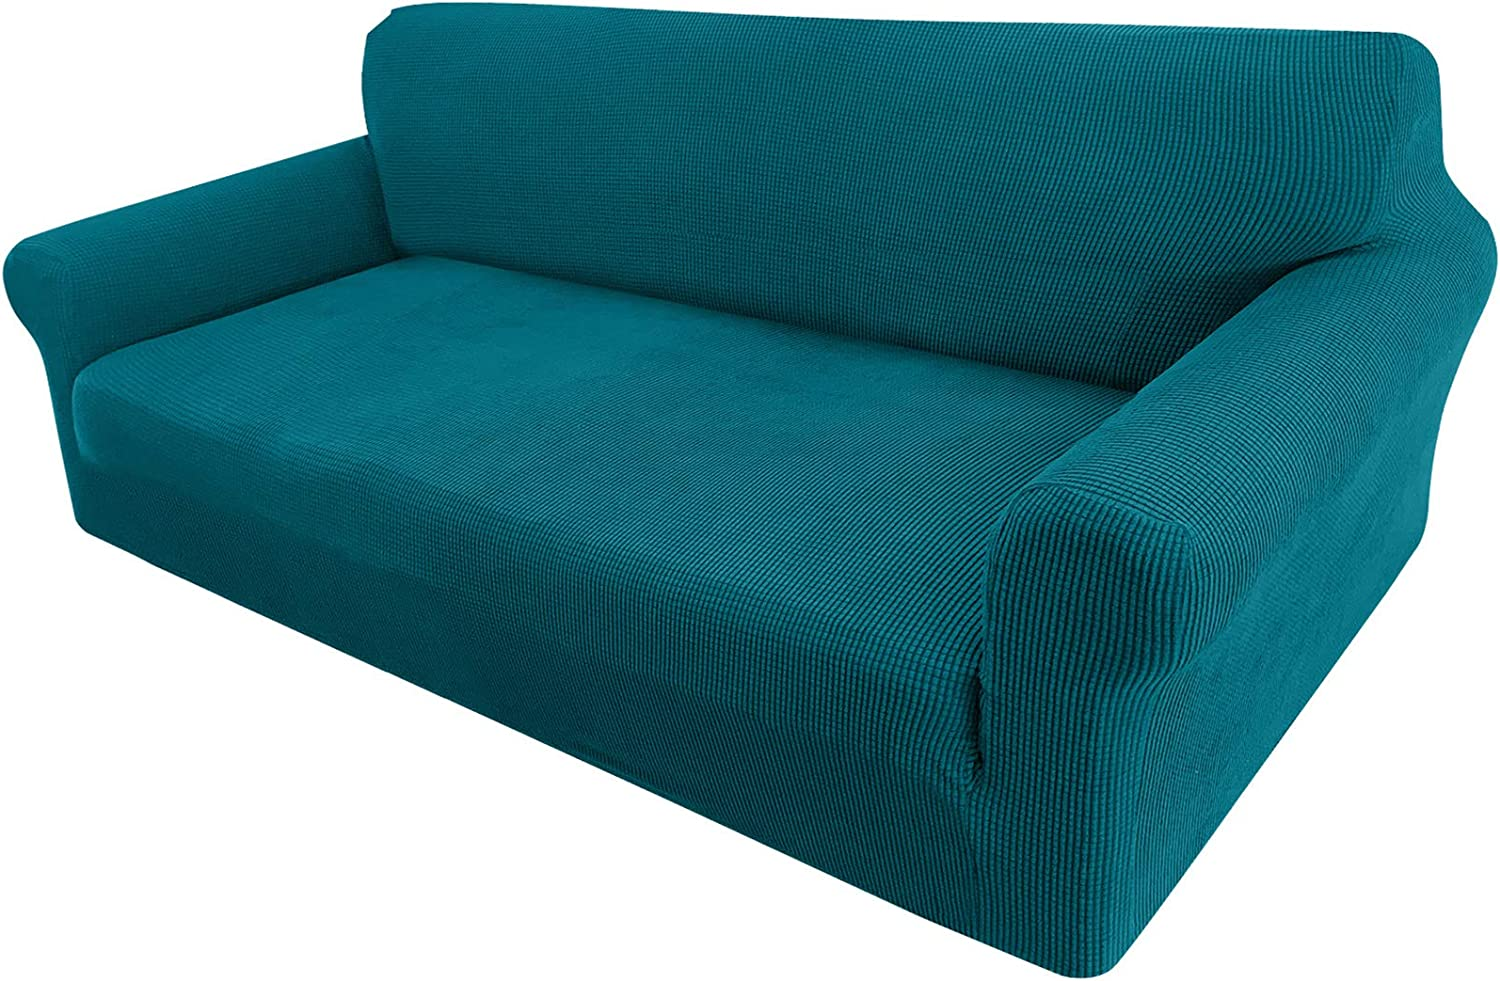 Granbest High Stretch Couch Cover 1-Piece Stylish Sofa Covers for 3 Cushion Couch Jacquard Sofa Slipcover Living Room Furniture Protector for Dogs Pets (Large, Blackish Green)